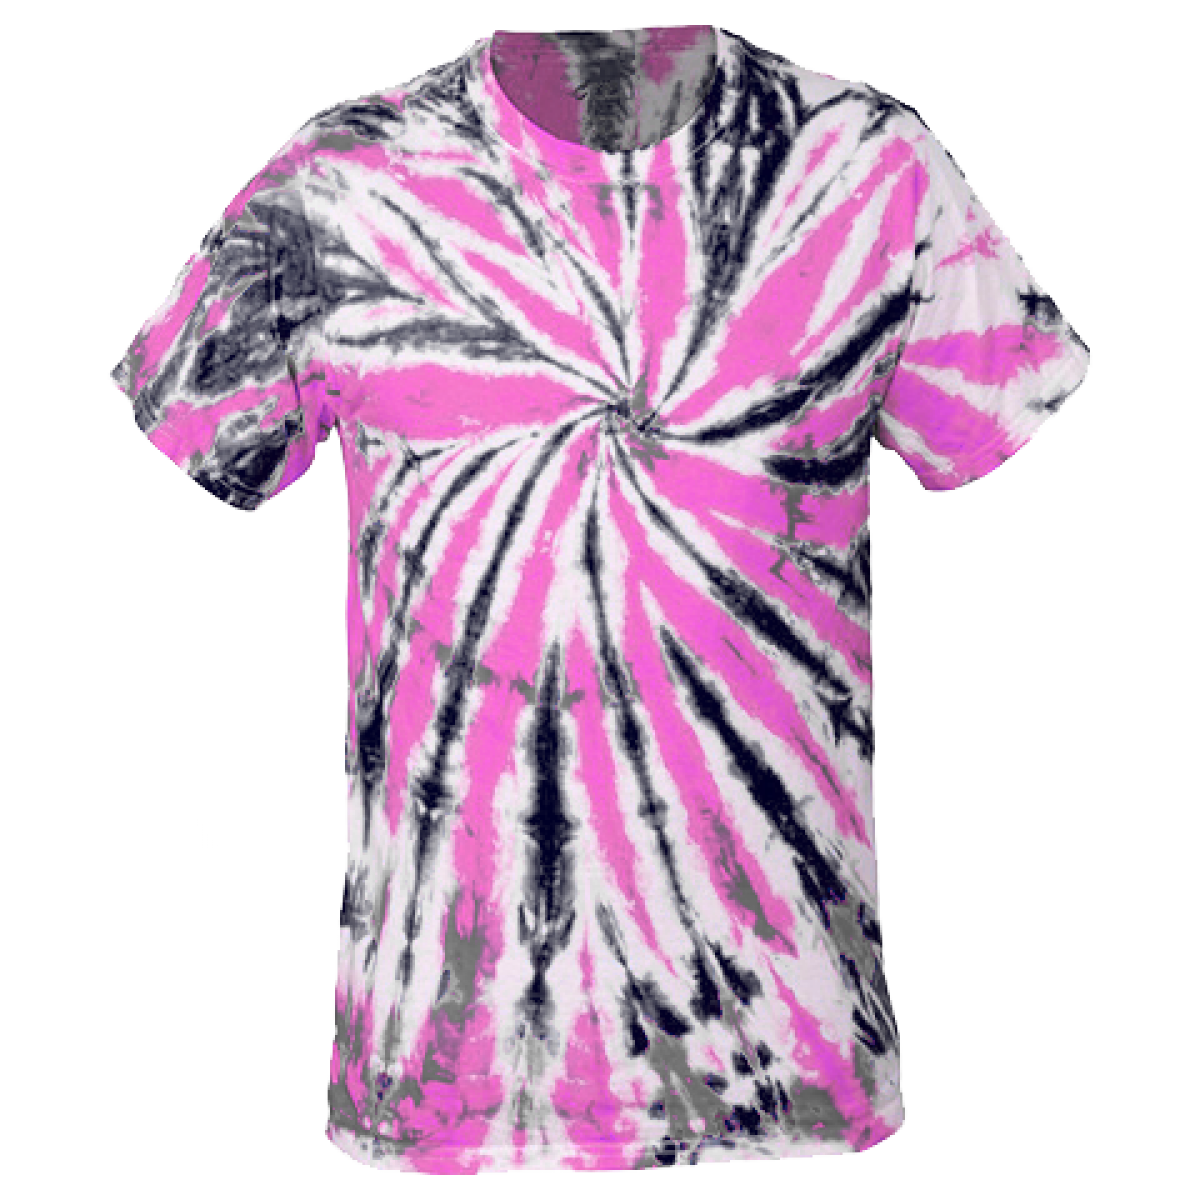 Multi-Color Tie-Dye Tee -Pink/Black-L